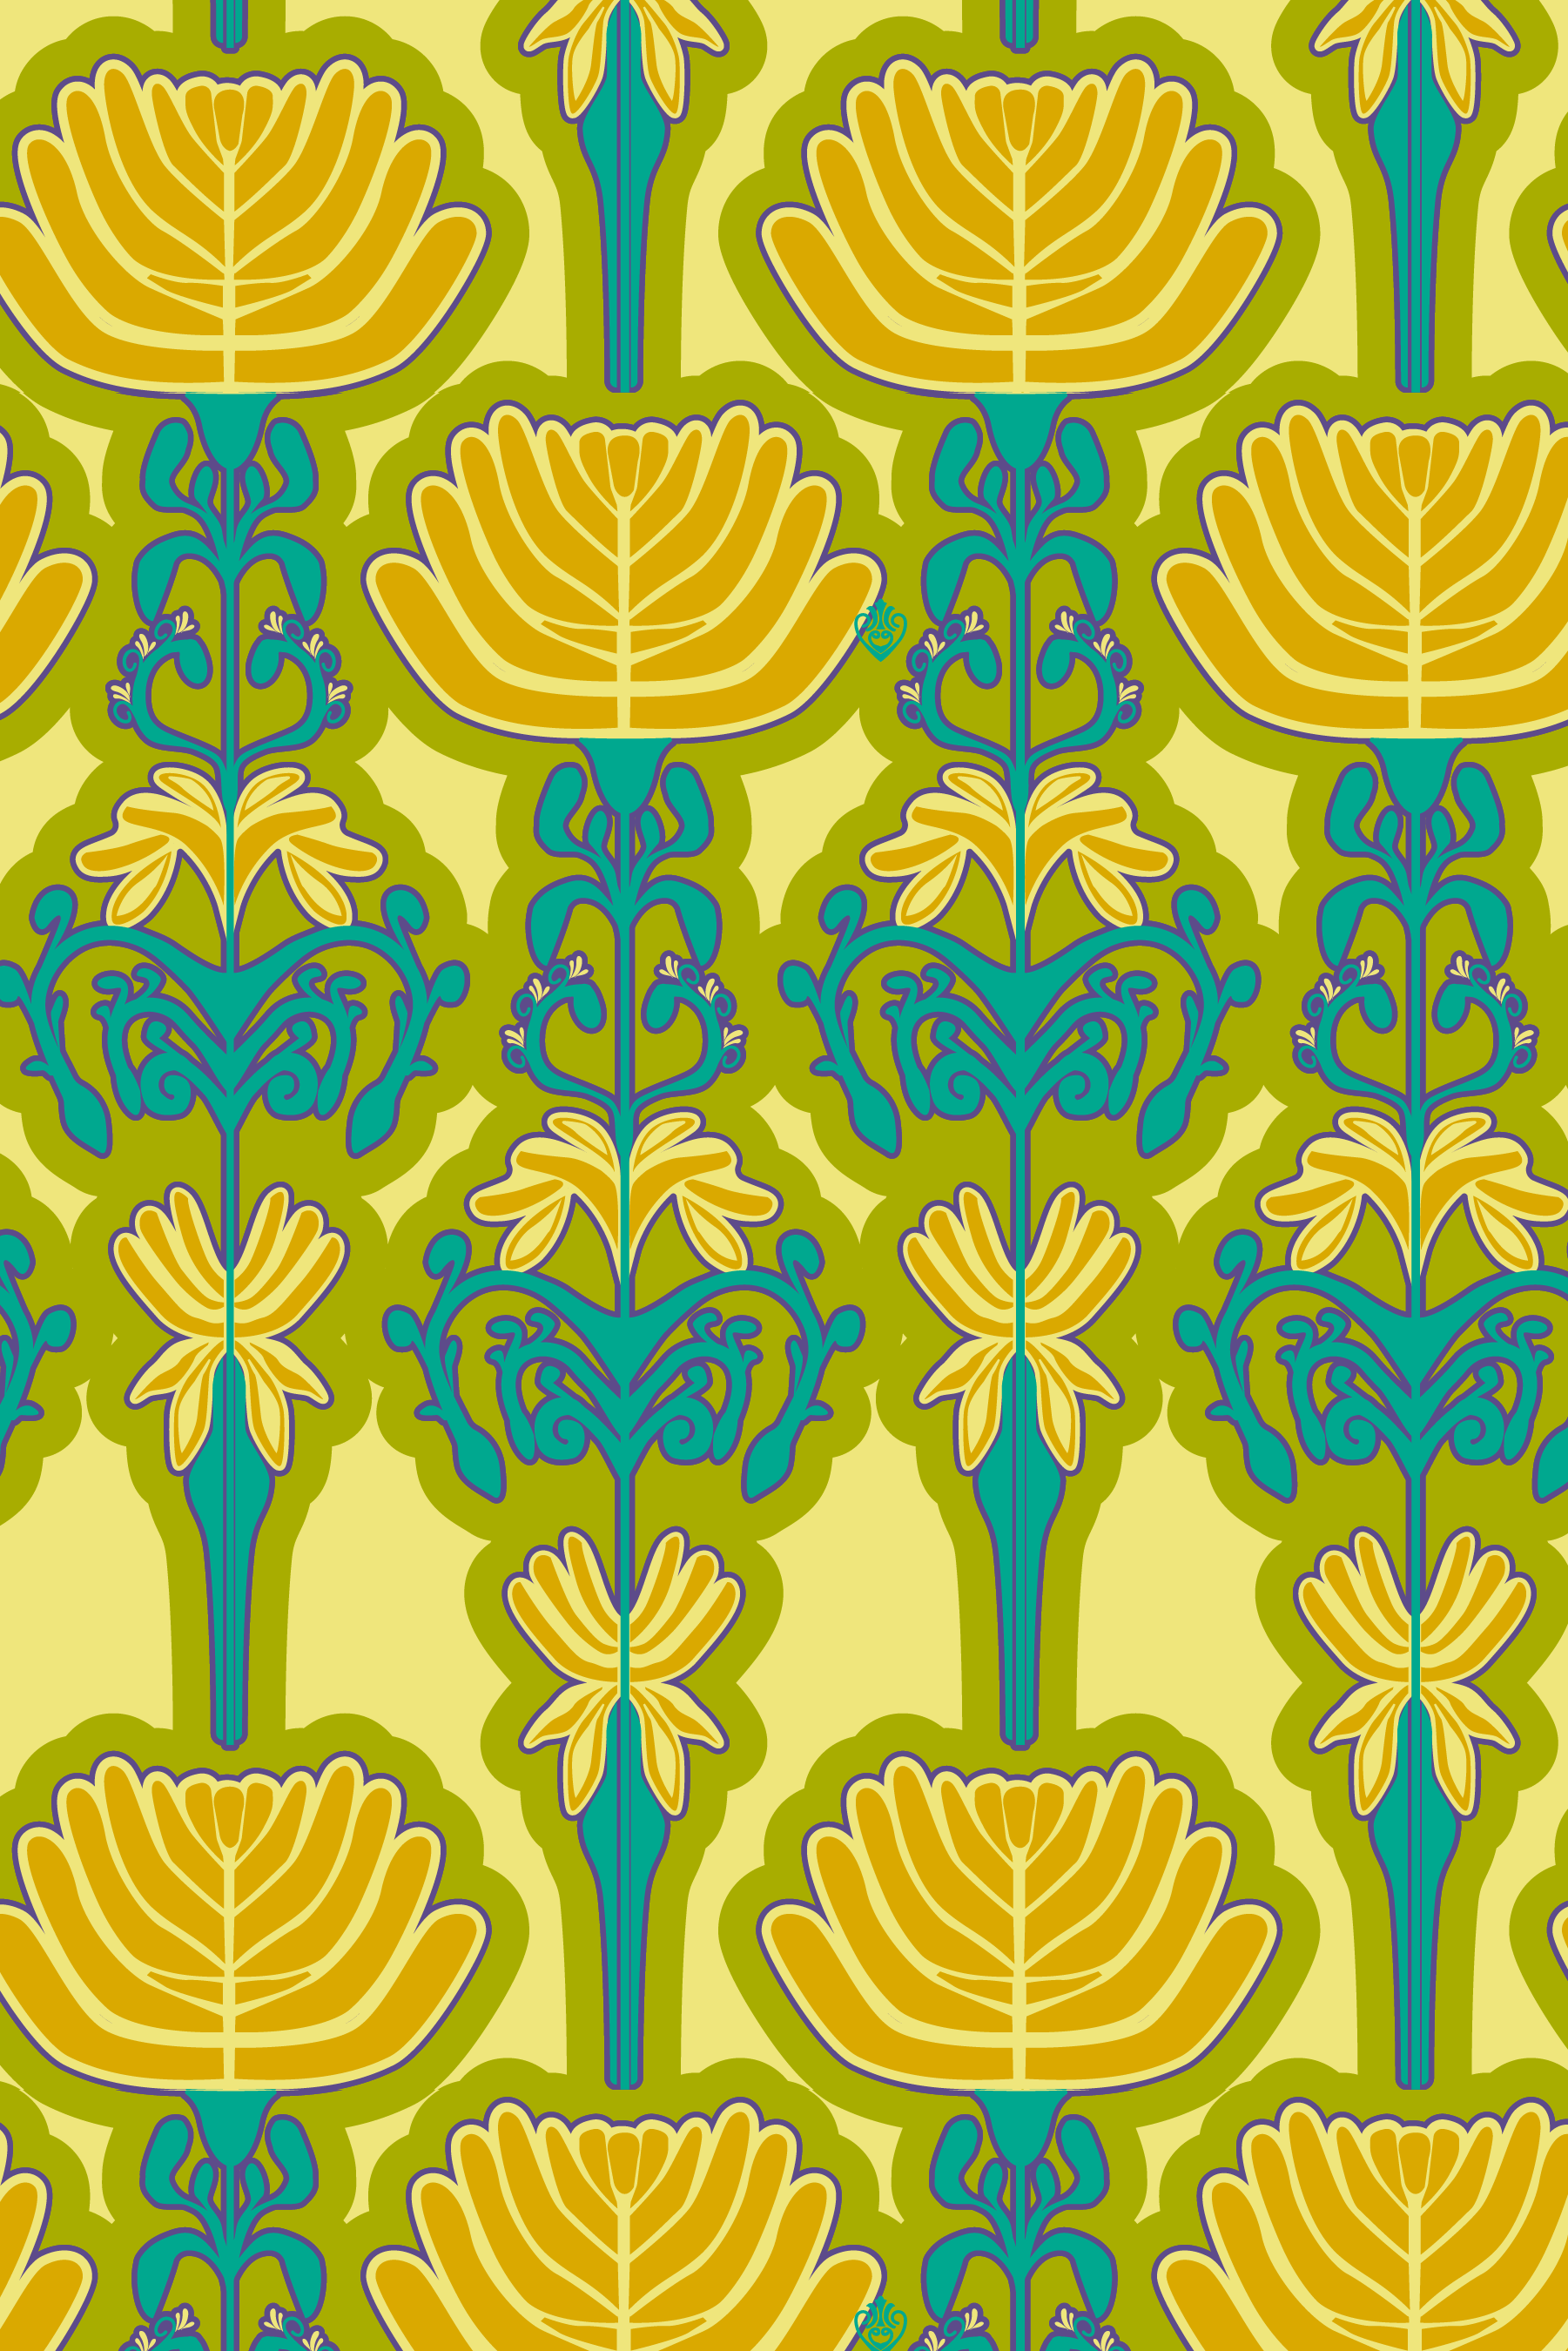 These wallpaper flowers are much more my jam. ©2018 Alyson Jon Life, All Rights Reserved